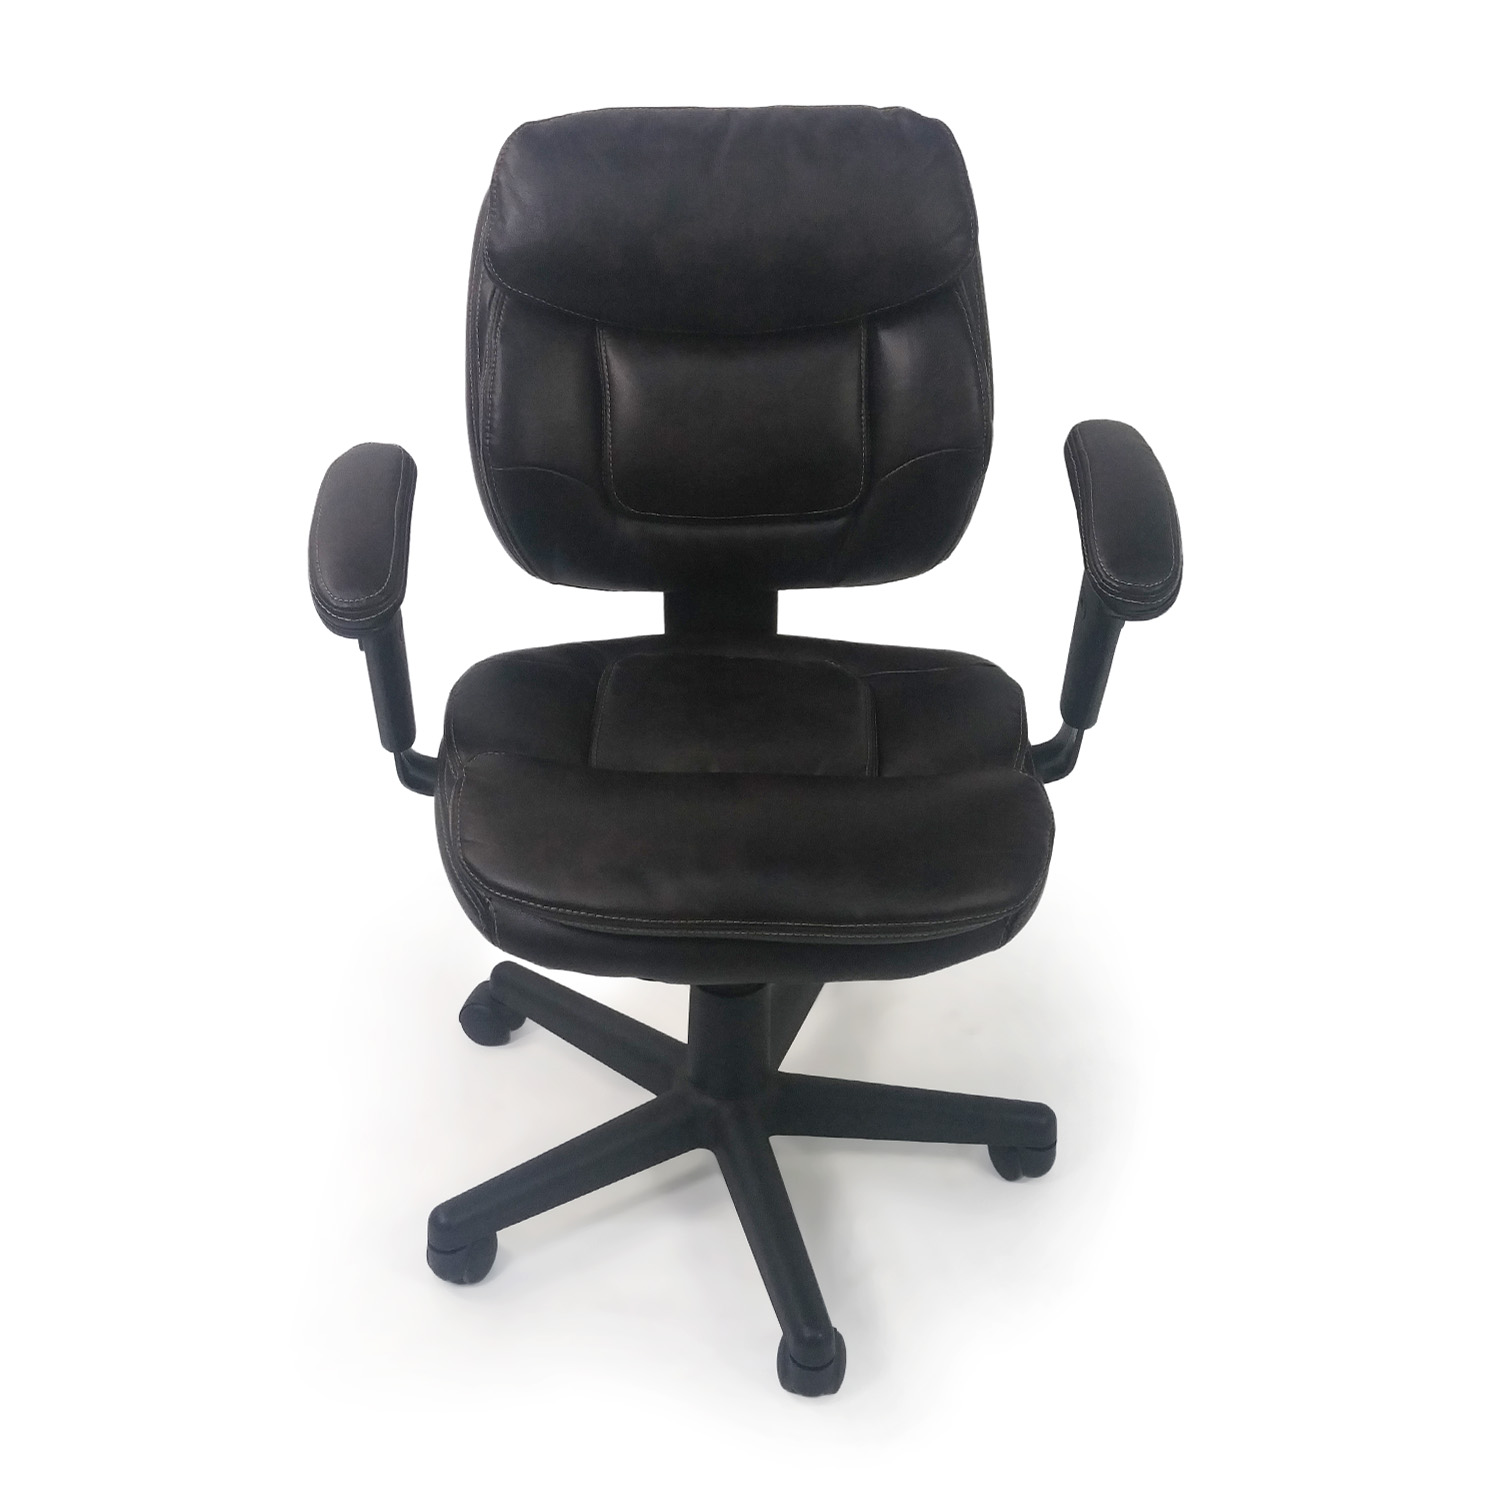 Plush Faux Leather Office Chair / Home Office Chairs